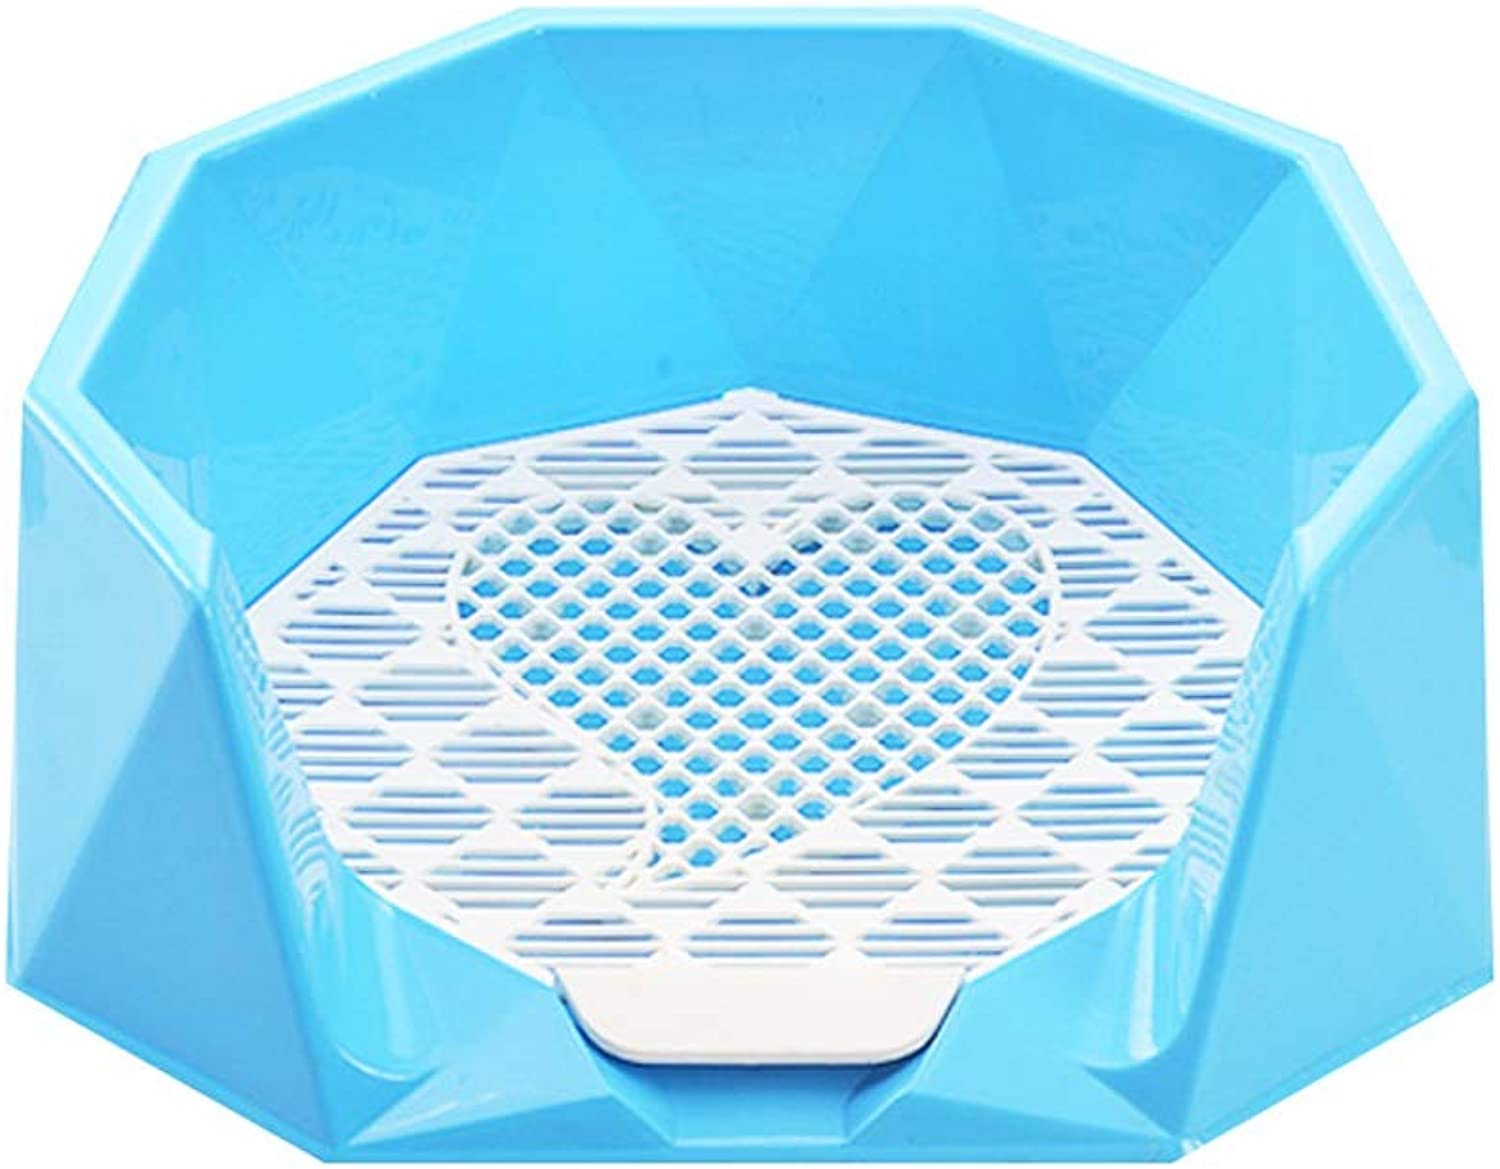 Pet Dog Toilet Dog Supplies Urinal Basin Easy To Clean Shit Bedpan Pet Supplies Sturdy and beautiful (color   bluee)